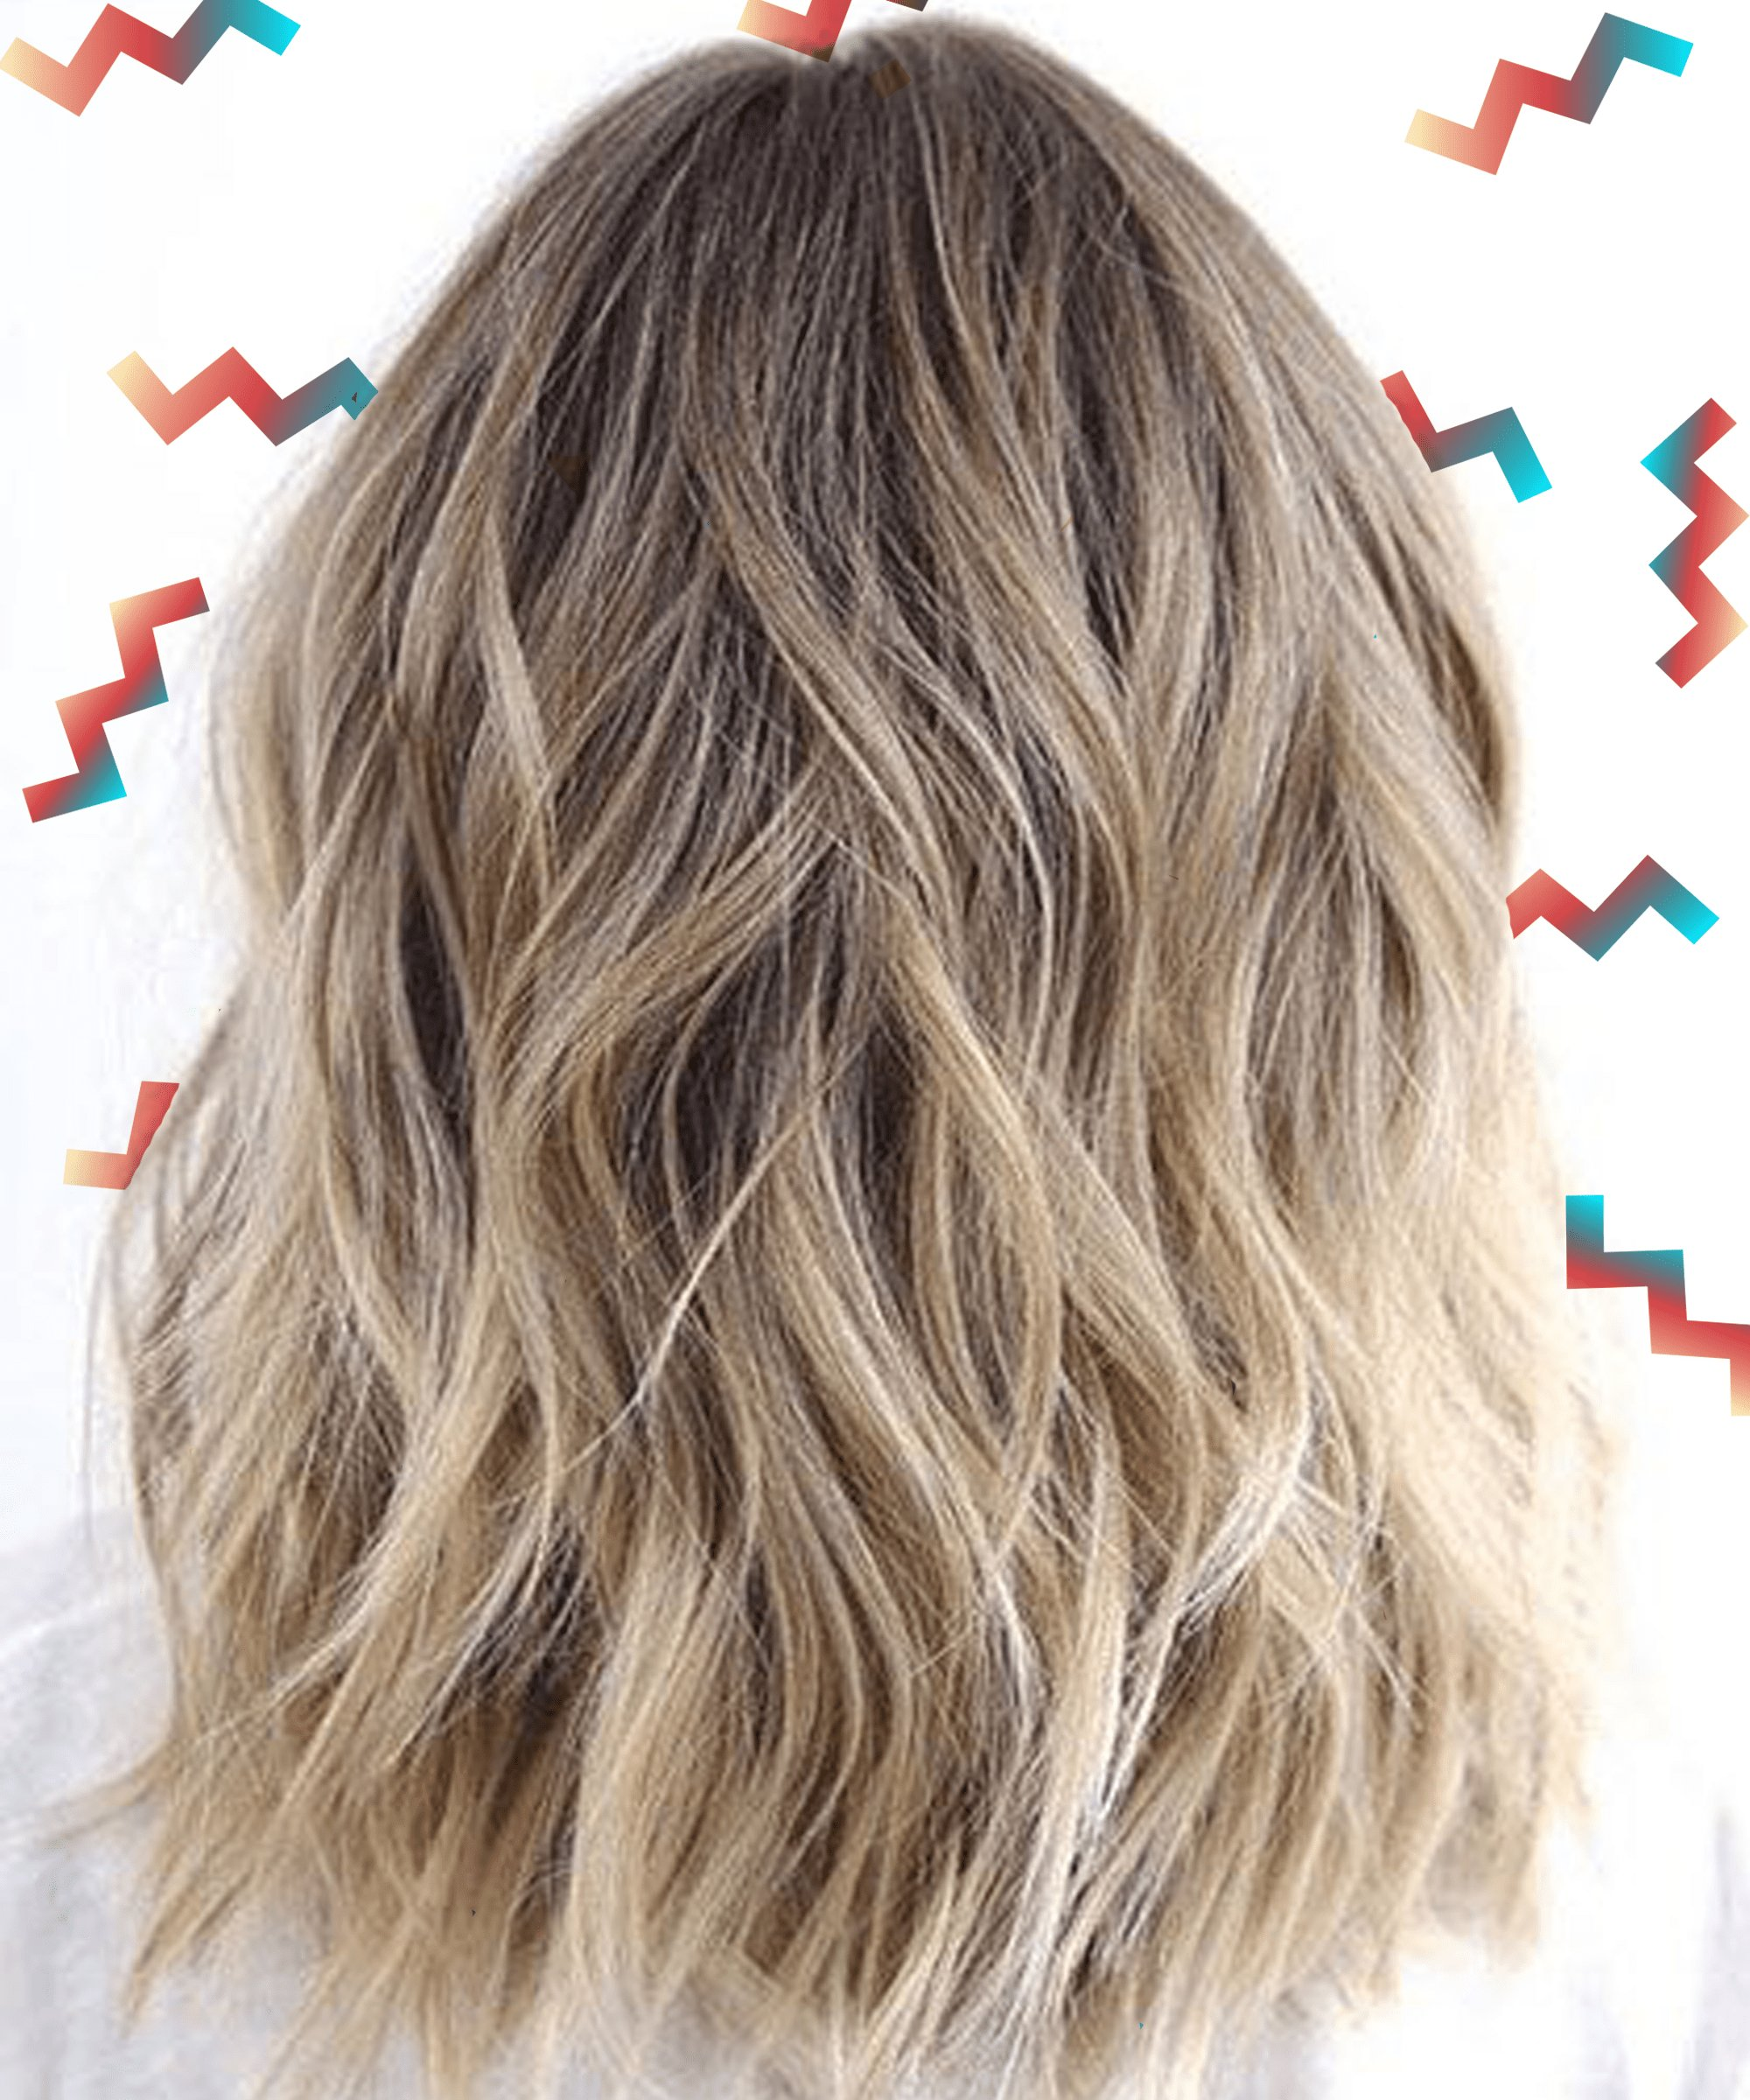 The Best Hair Coloring Techniques Terminology Pictures